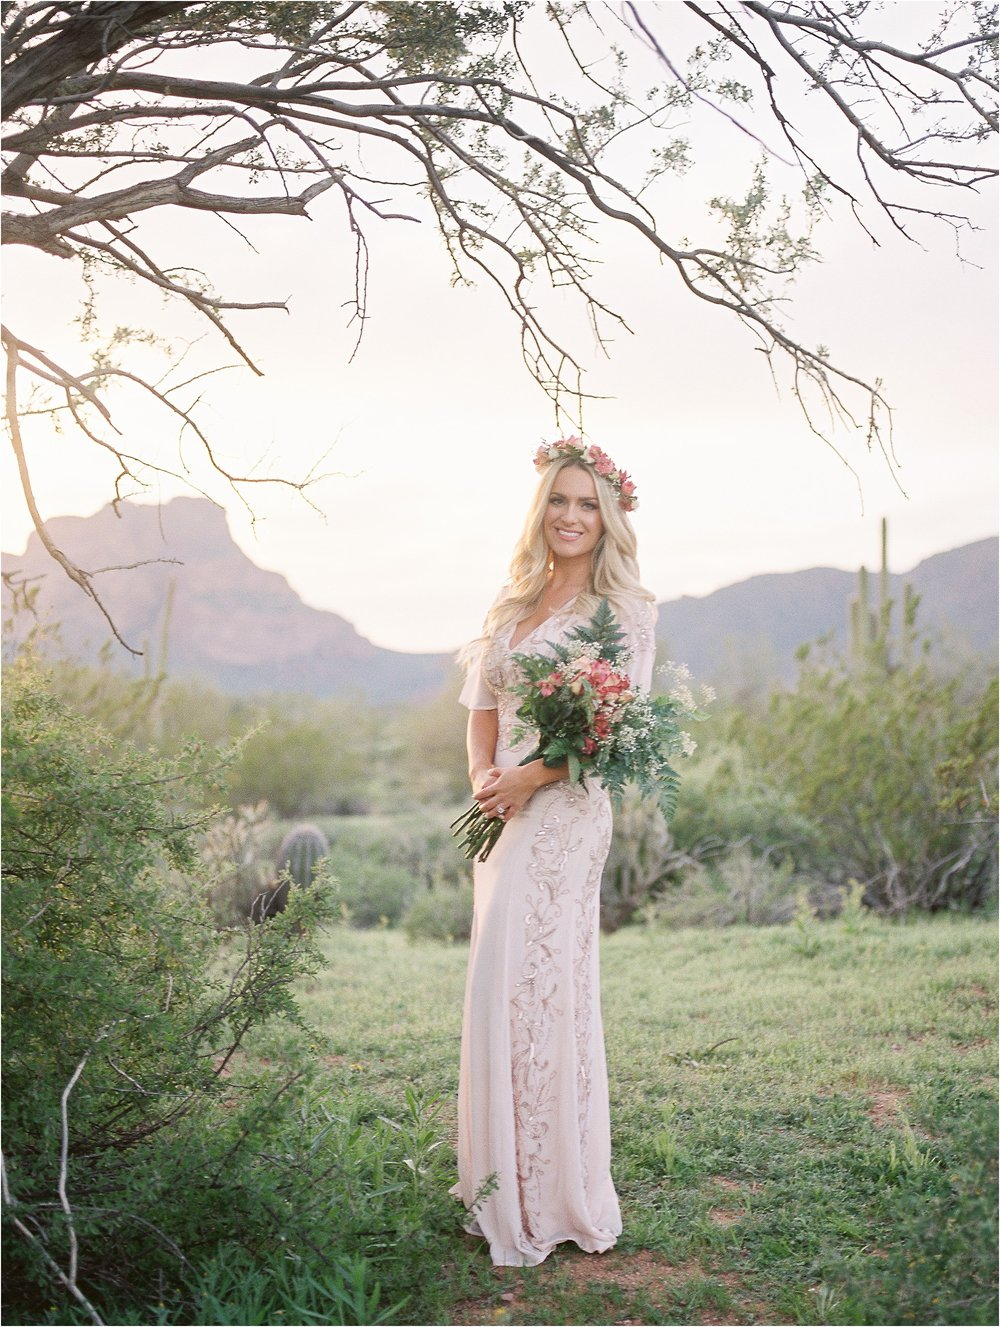 Sarah Jane Photography Film Hybrid Scottsdale Phoenix Arizona Destination Wedding Photographer salt river asos engagement britney tj_0029.jpg